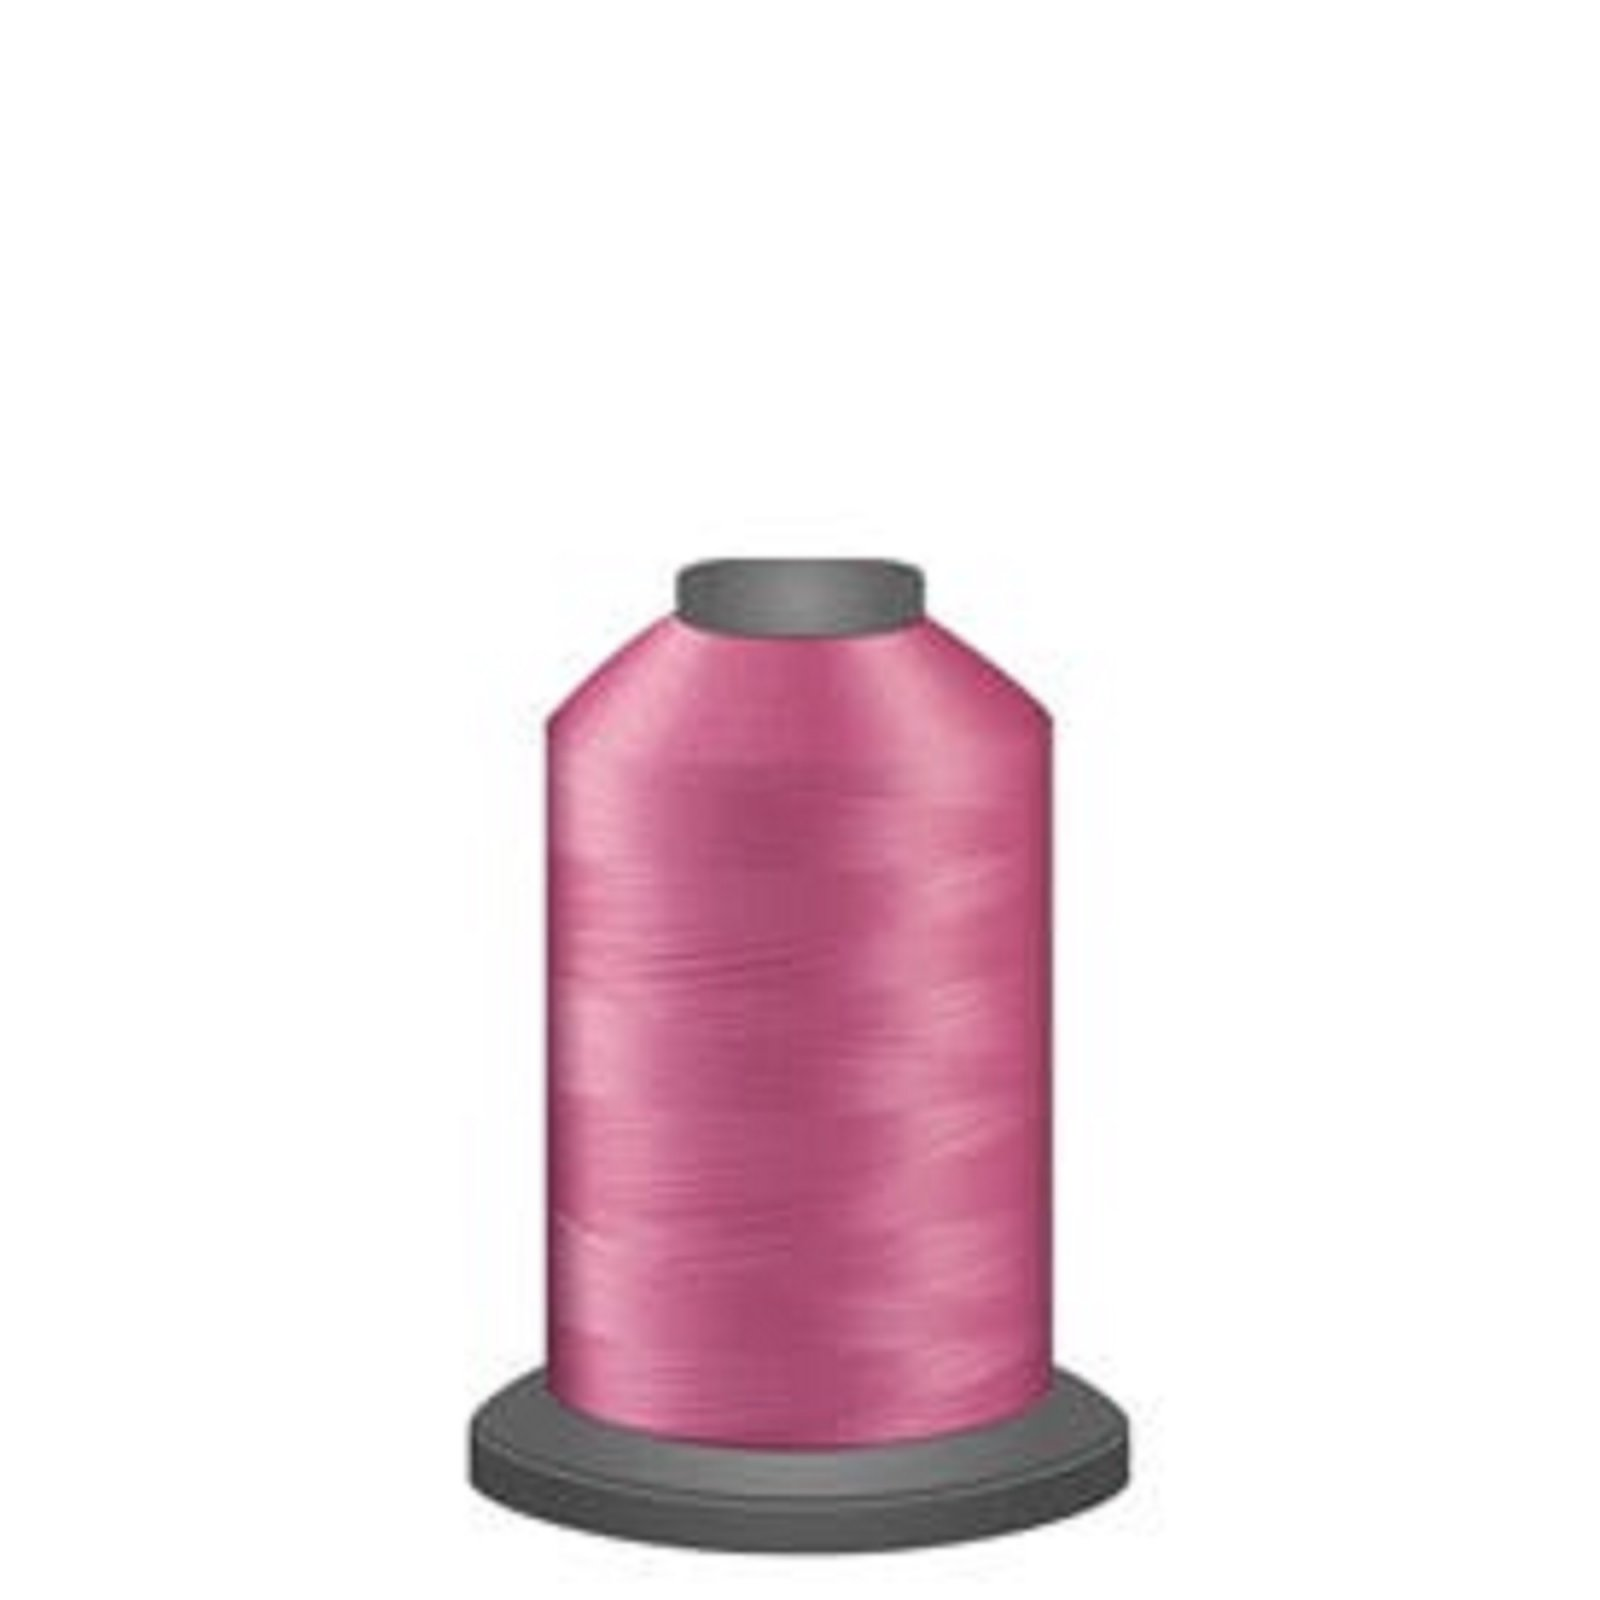 Glide thread-pink-1,000m spool-100% polyester